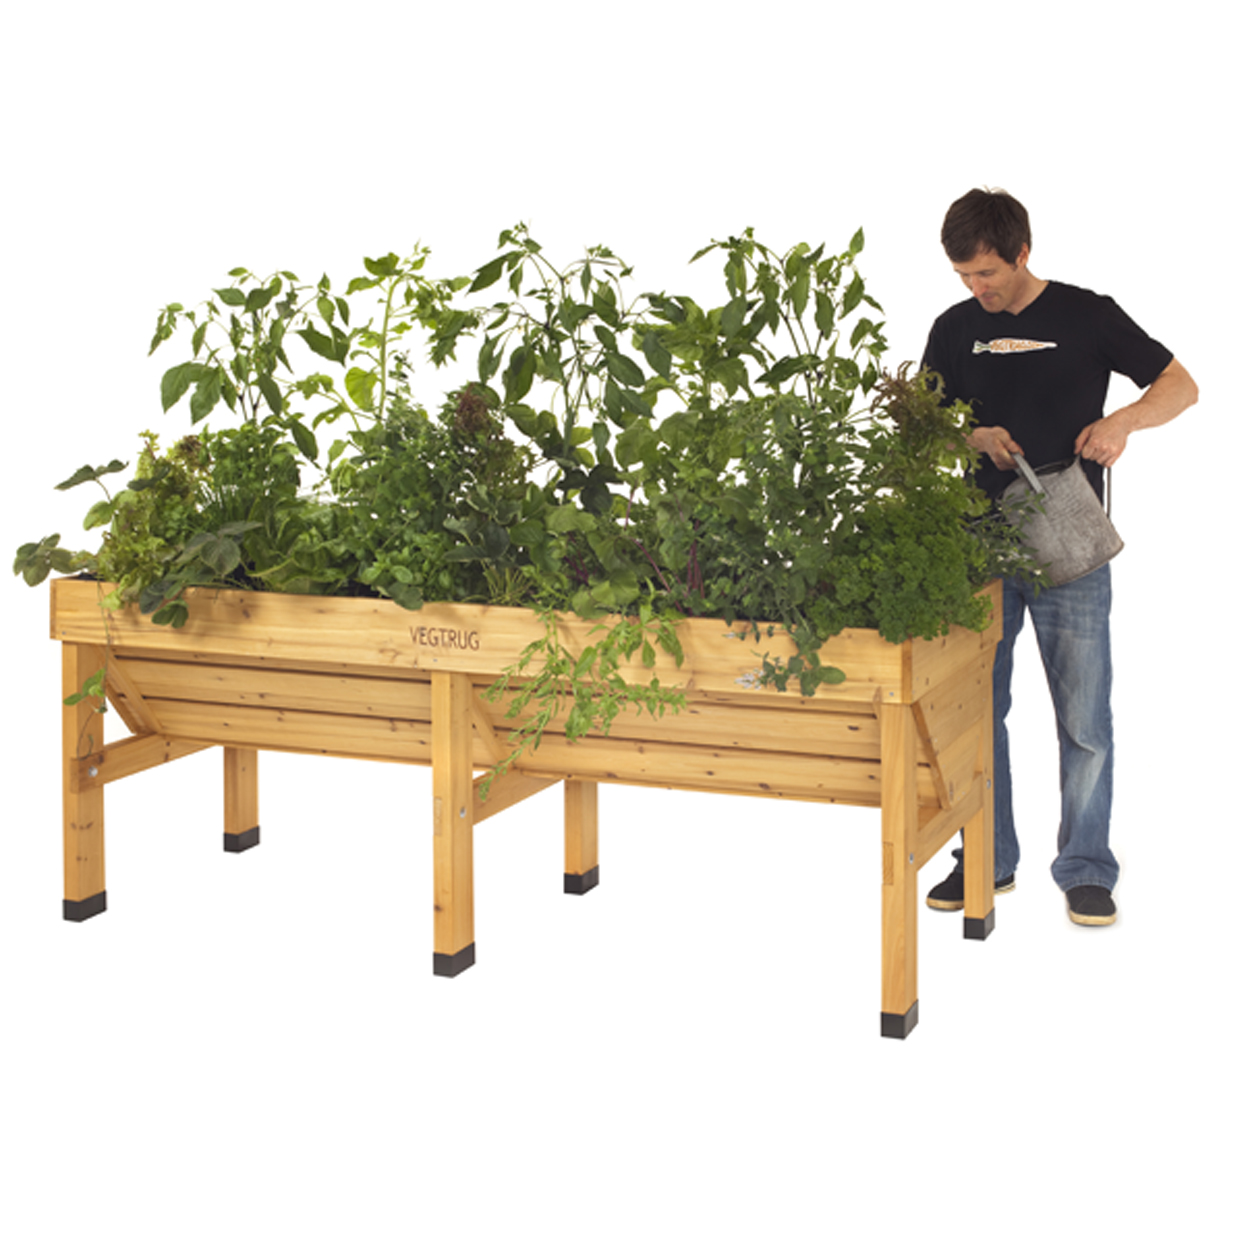 Pallet/12 - MEDIUM VEGTRUG